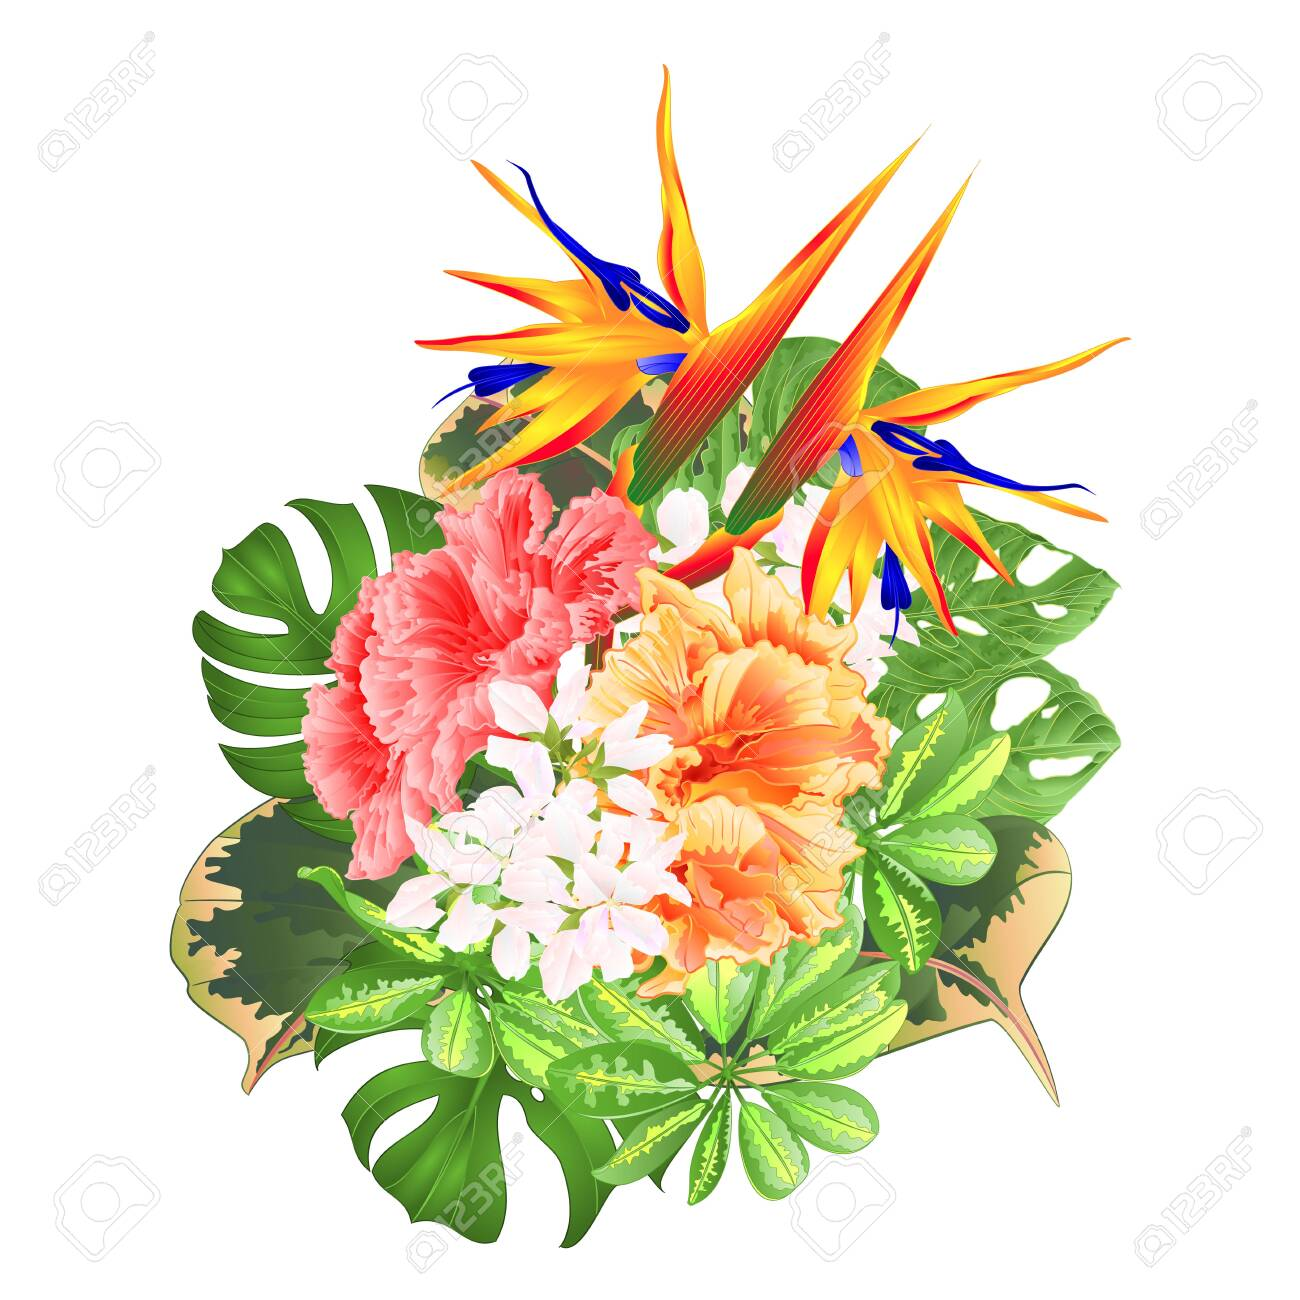 Bouquet With Tropical Flowers Floral Arrangement With Strelitzia Royalty Free Cliparts Vectors And Stock Illustration Image 128434644